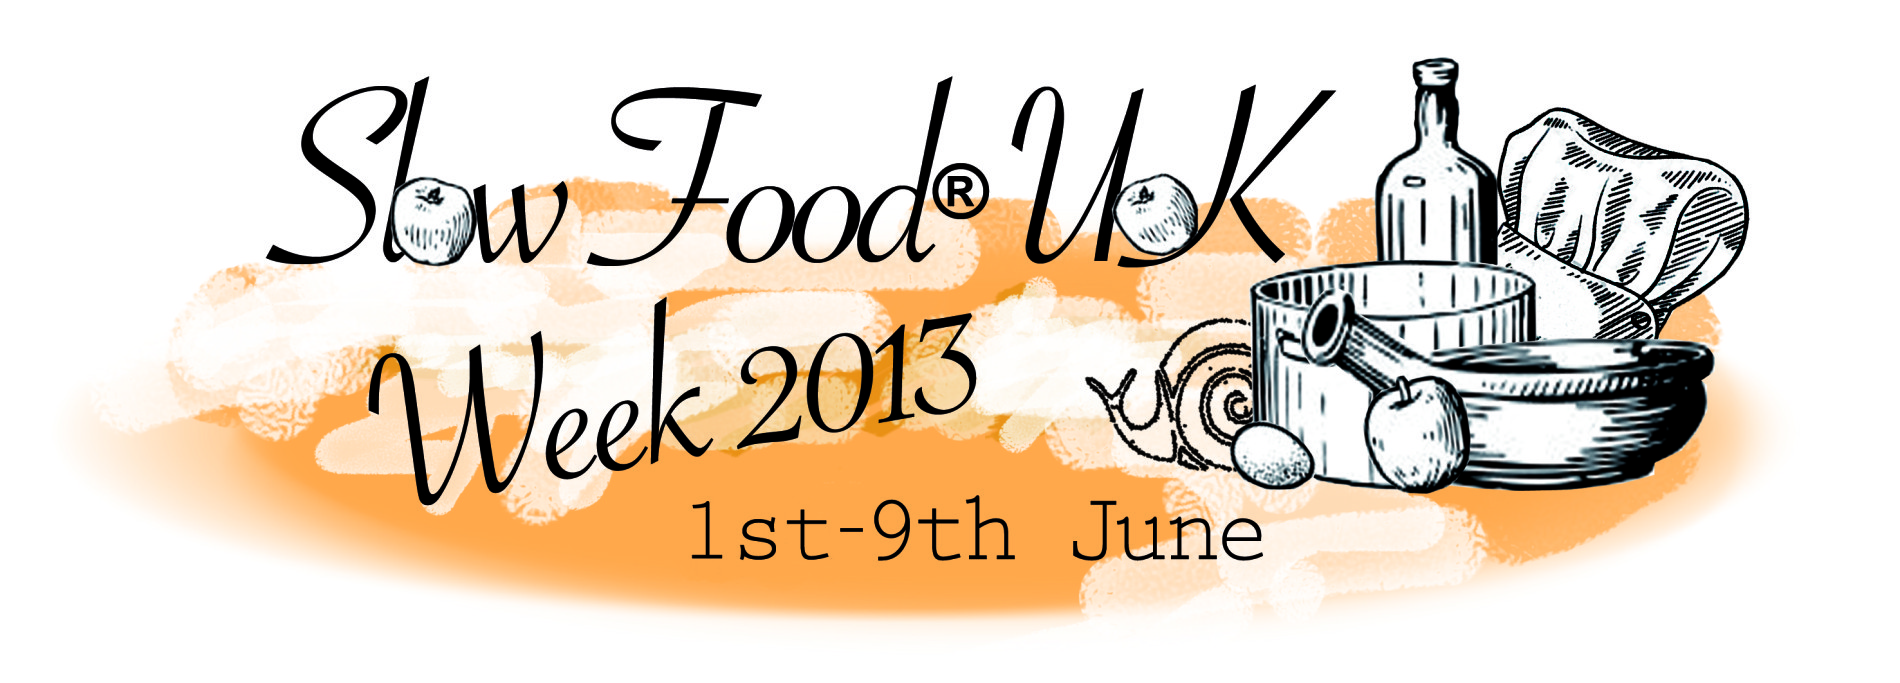 Slow Food UK Announces a Week Devoted to Good, Clean, Fair Eating